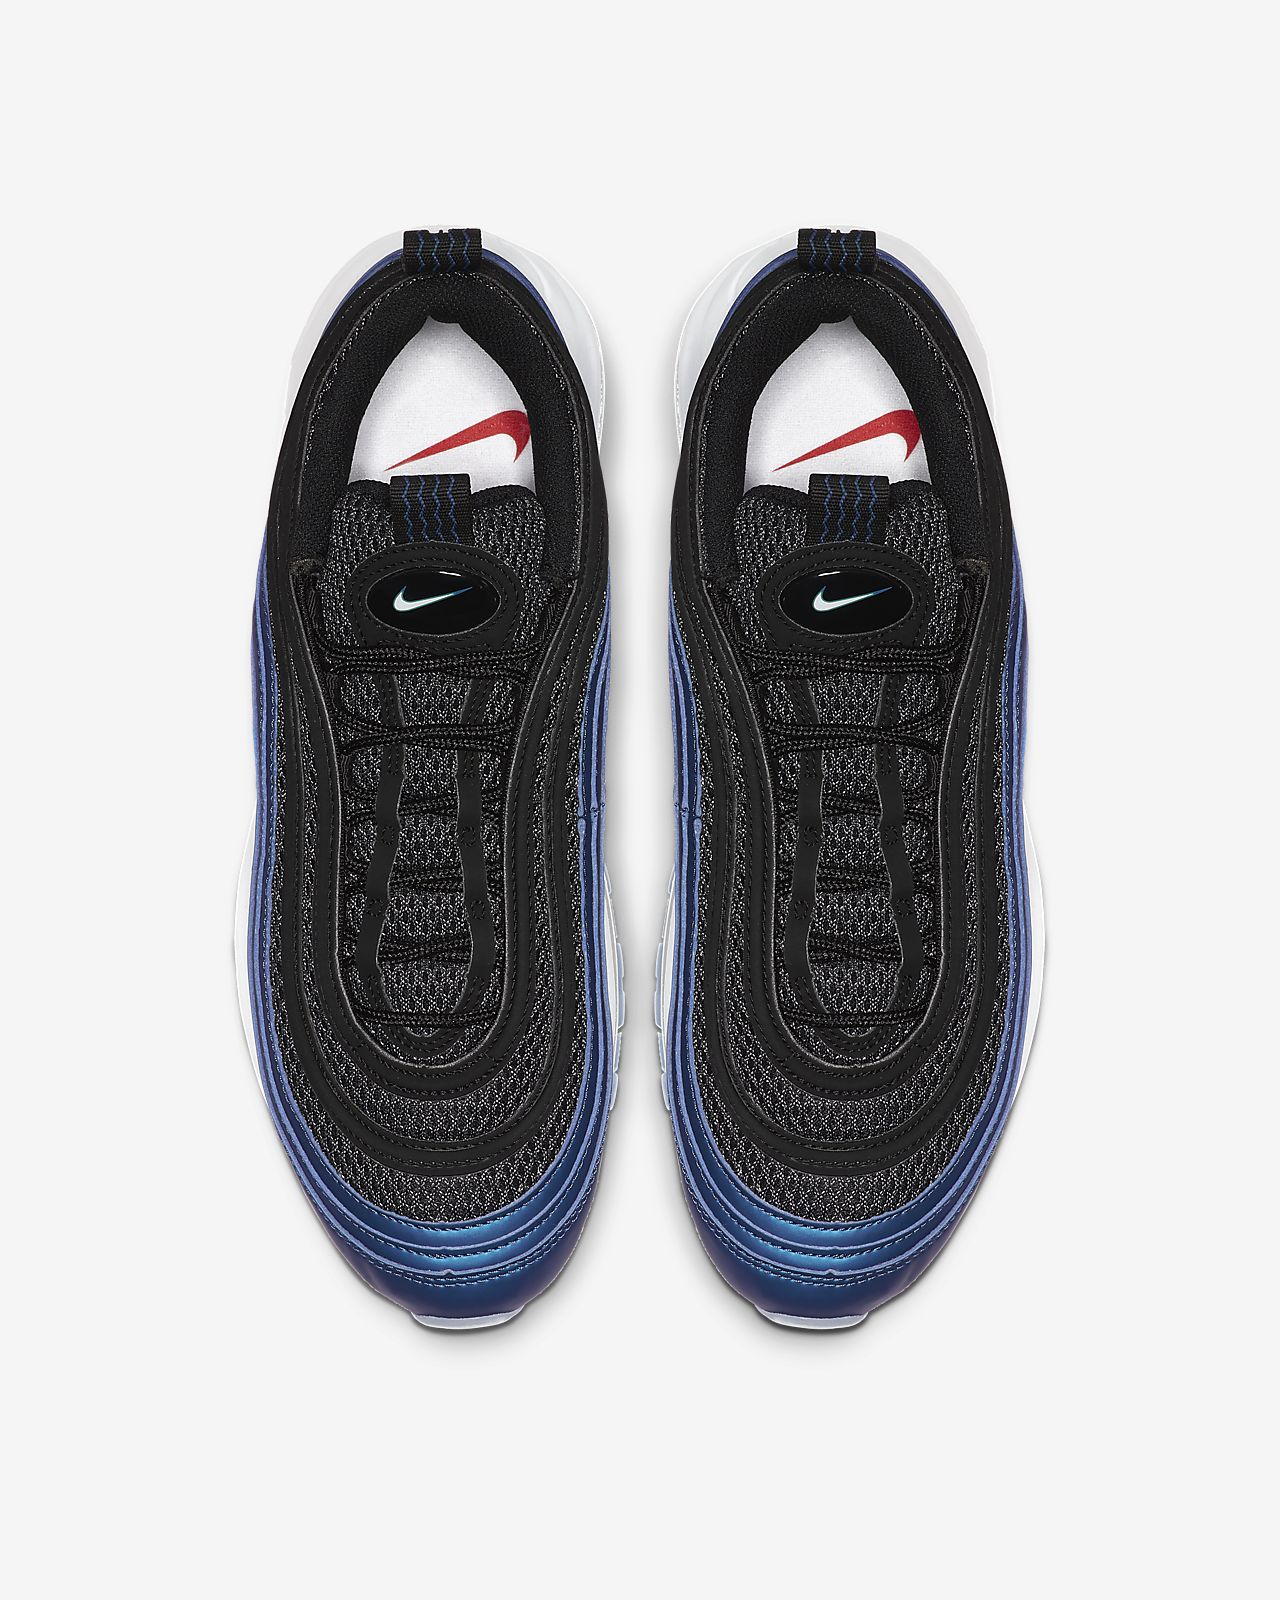 Air Max 97 Undefeated Running Shoes For Men Flipkart